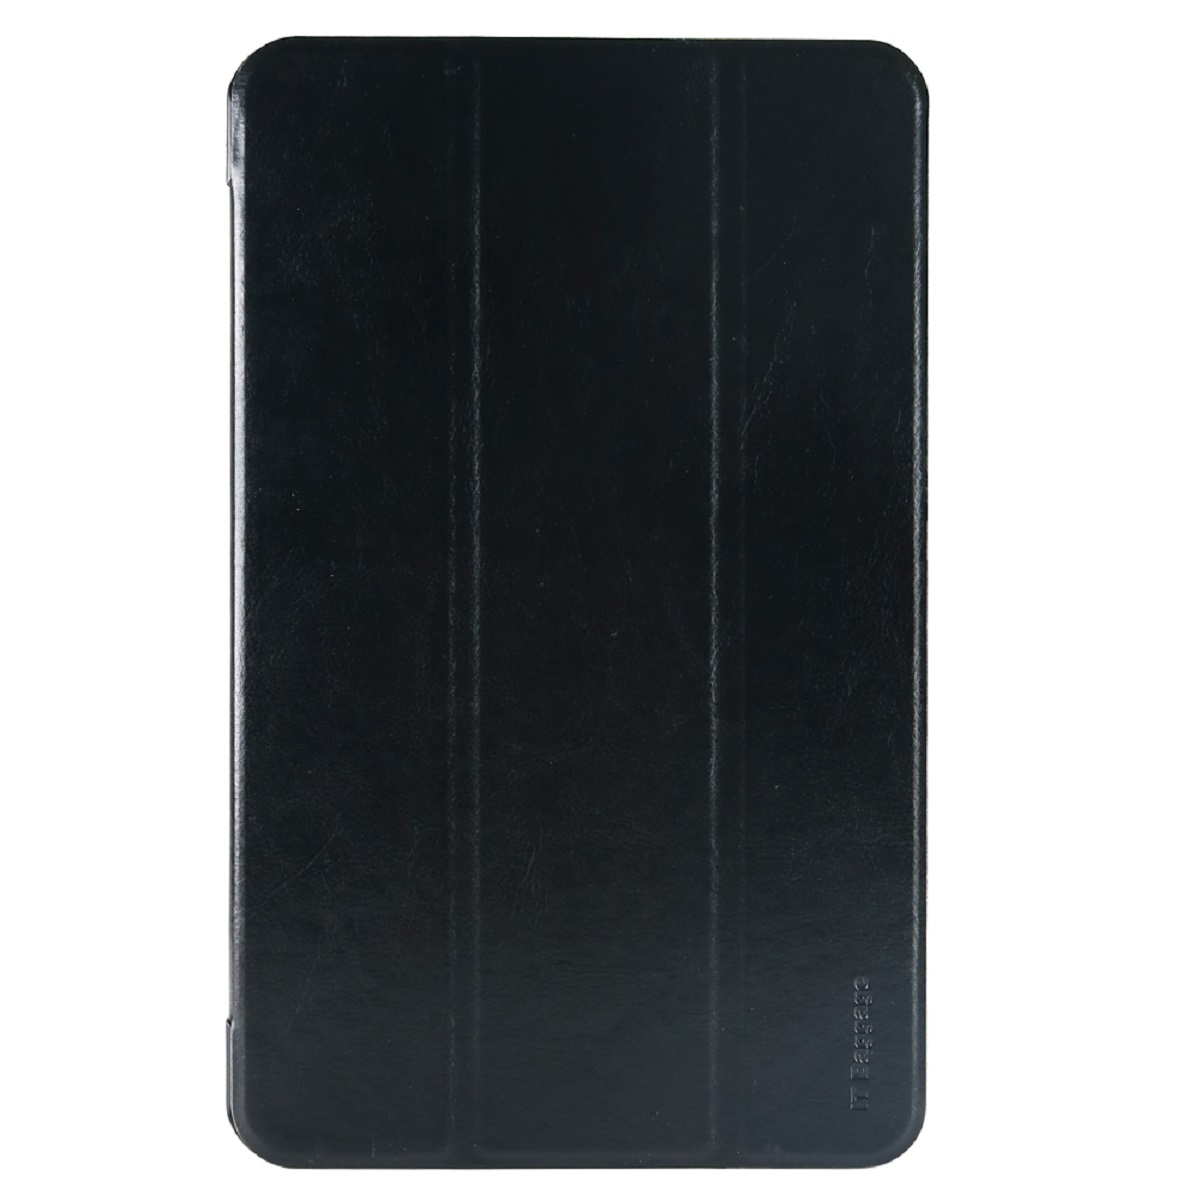 IT Baggage чехол для Samsung Galaxy Tab A 10.1 SM-T580/T585, Black аксессуар чехол it baggage for samsung galaxy tab a 7 sm t285 sm t280 иск кожа red itssgta70 3